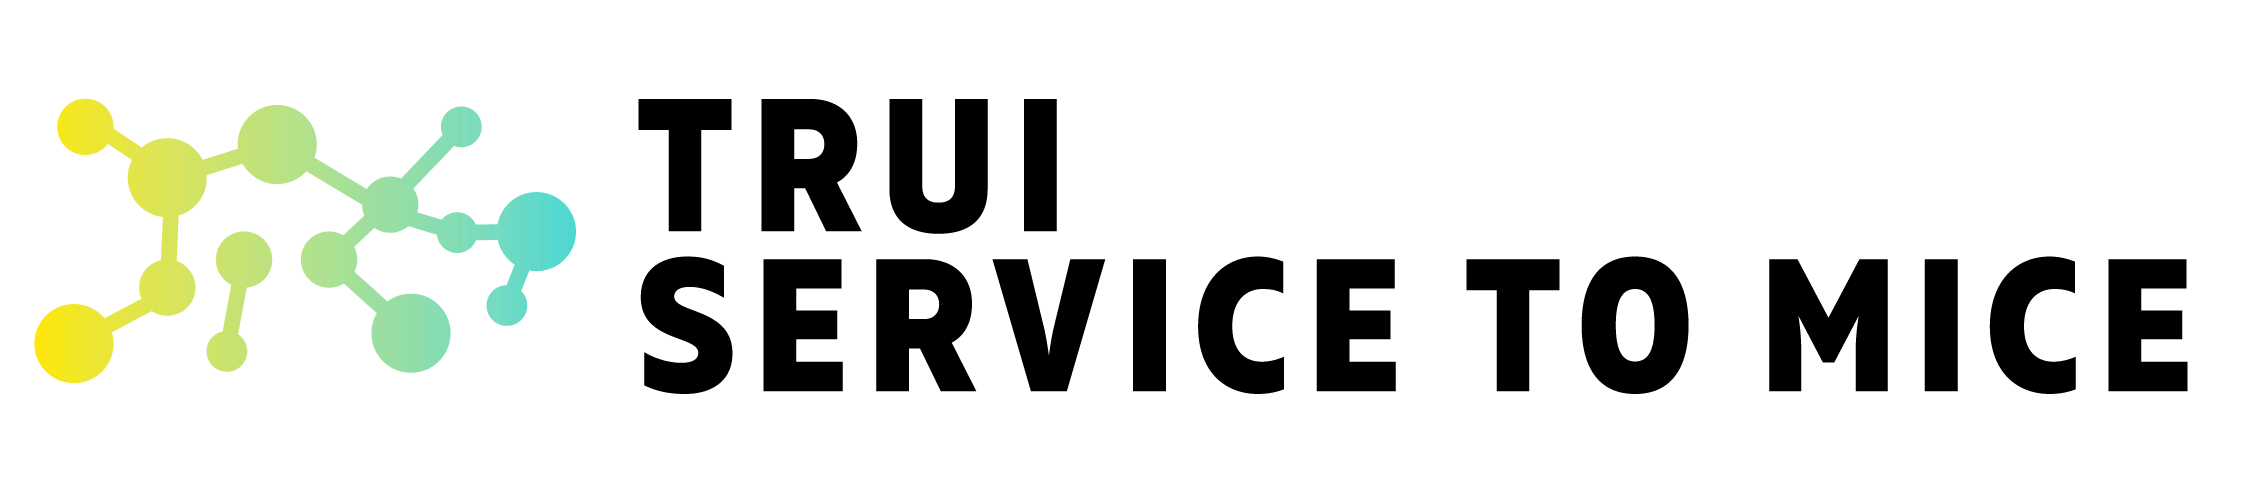 Trui Service to MICE